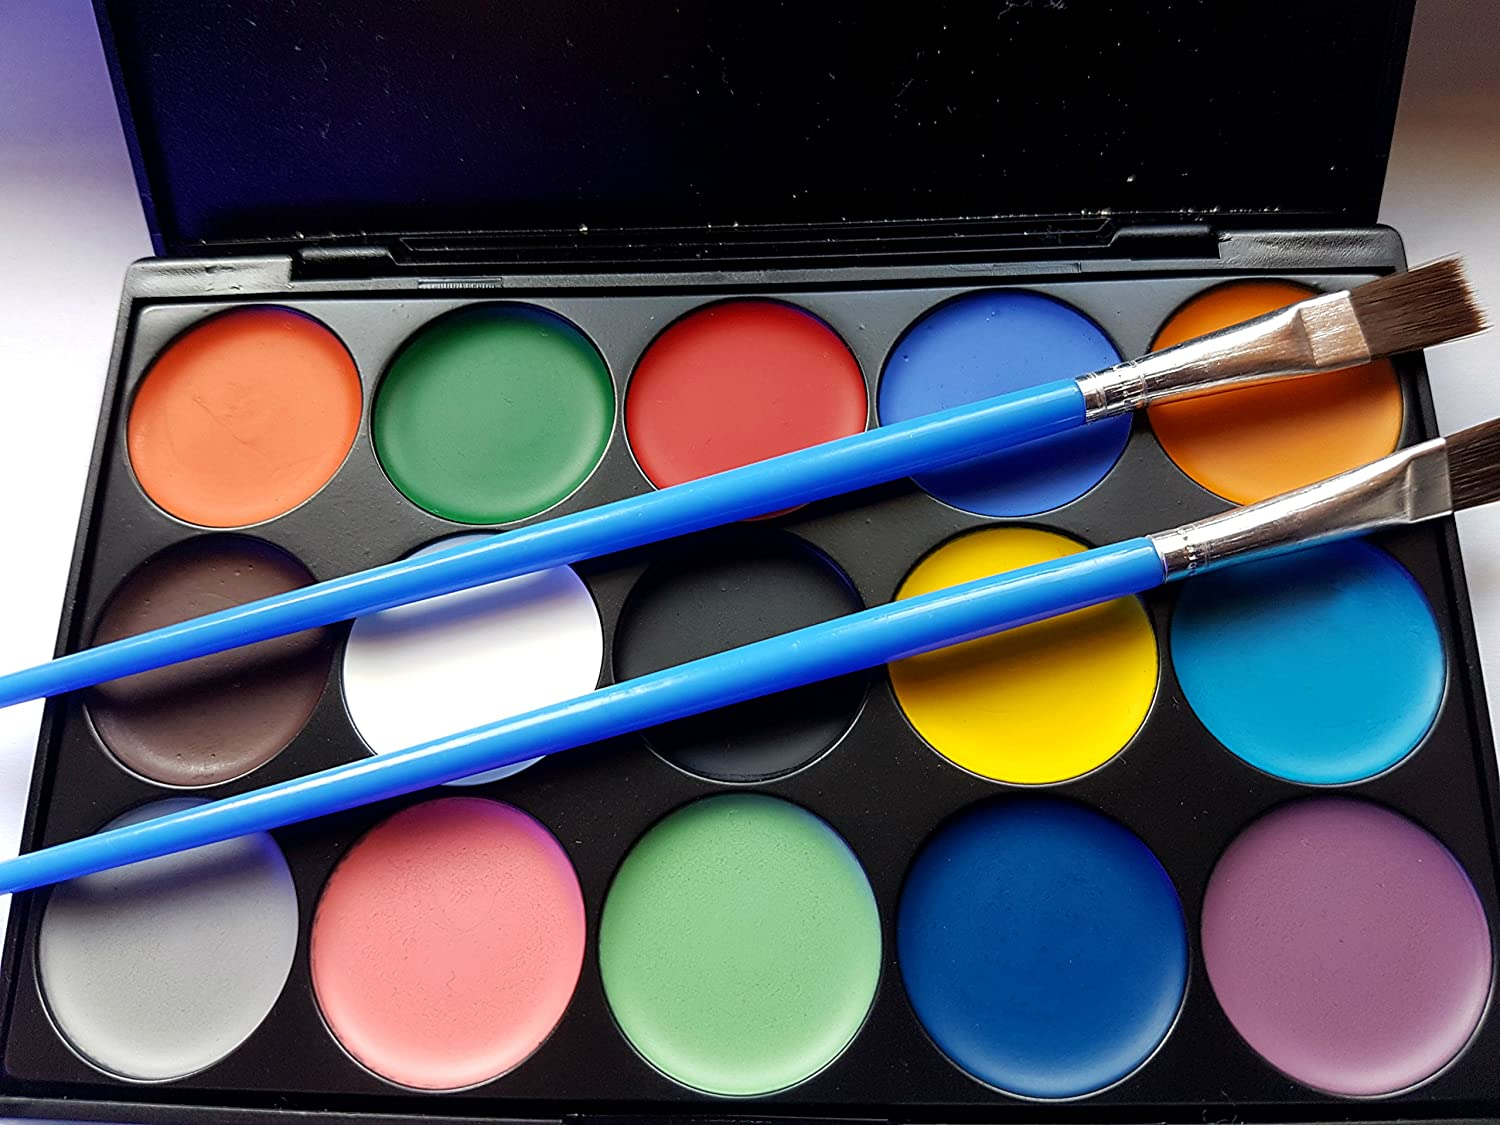 Face Paint | Face Paint Set 15 Color Palette | Professional Face Painting Palette with Premium Hard Carry Case | Paint Set Includes 2 Brushes & 24 Stencils | Water Activated Non Toxic & FDA Approved Artistic Edge AEFP17